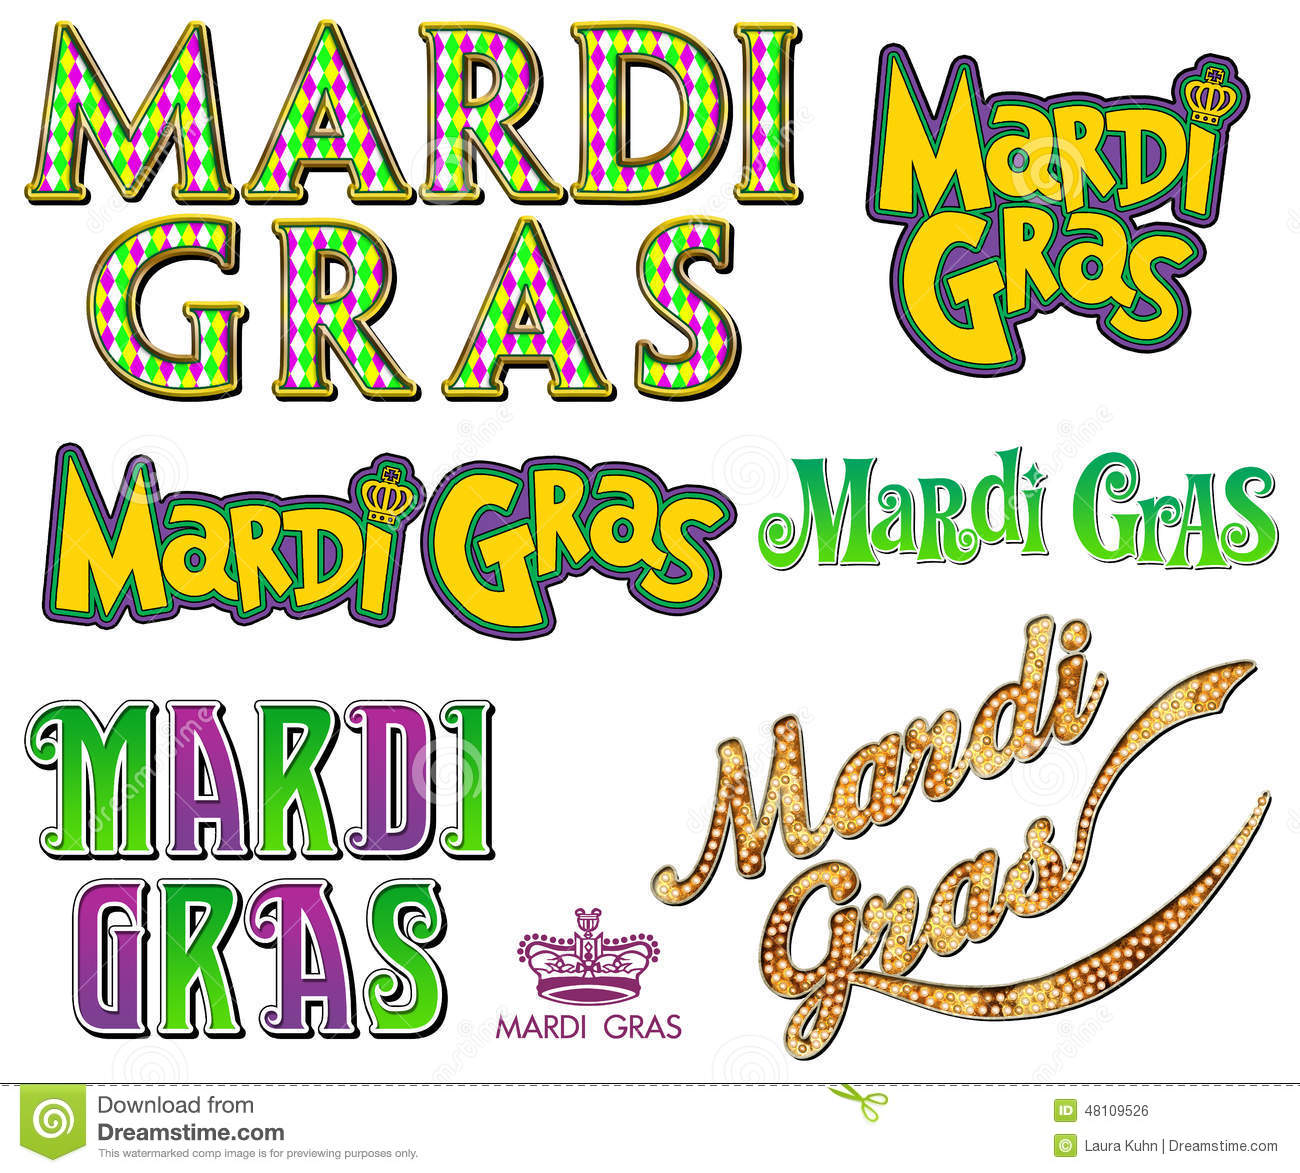 a history of the mardi gras a day of the carnival celebration Carnival and mardi gras fun activities history & origin of the carnival formats: info page: worksheet: mardi gras day is the last day before lent like donuts, cakes and pancakes to mark the occasion before the fasting of lent begins it is marked by a feast, a celebration colorful and.